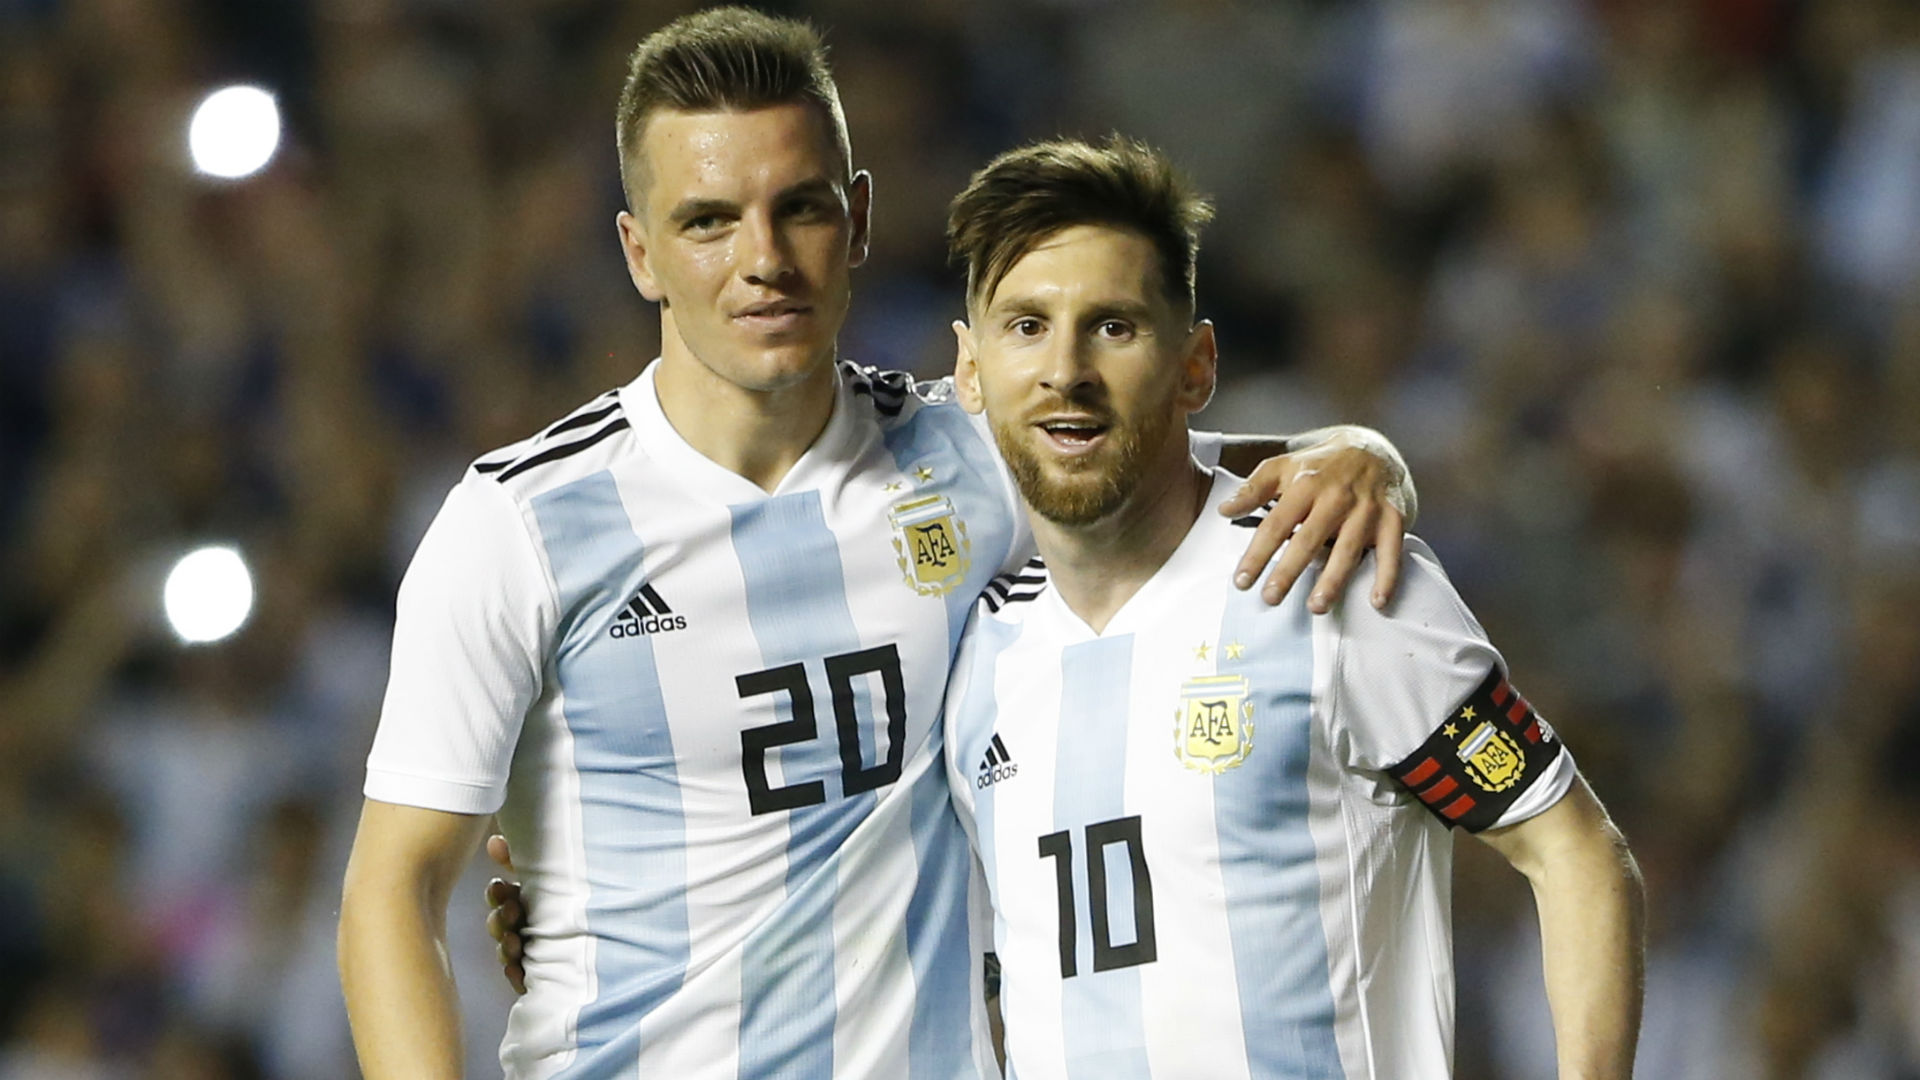 Messi presence a privilege not a nuisance for Argentina - Lo Celso